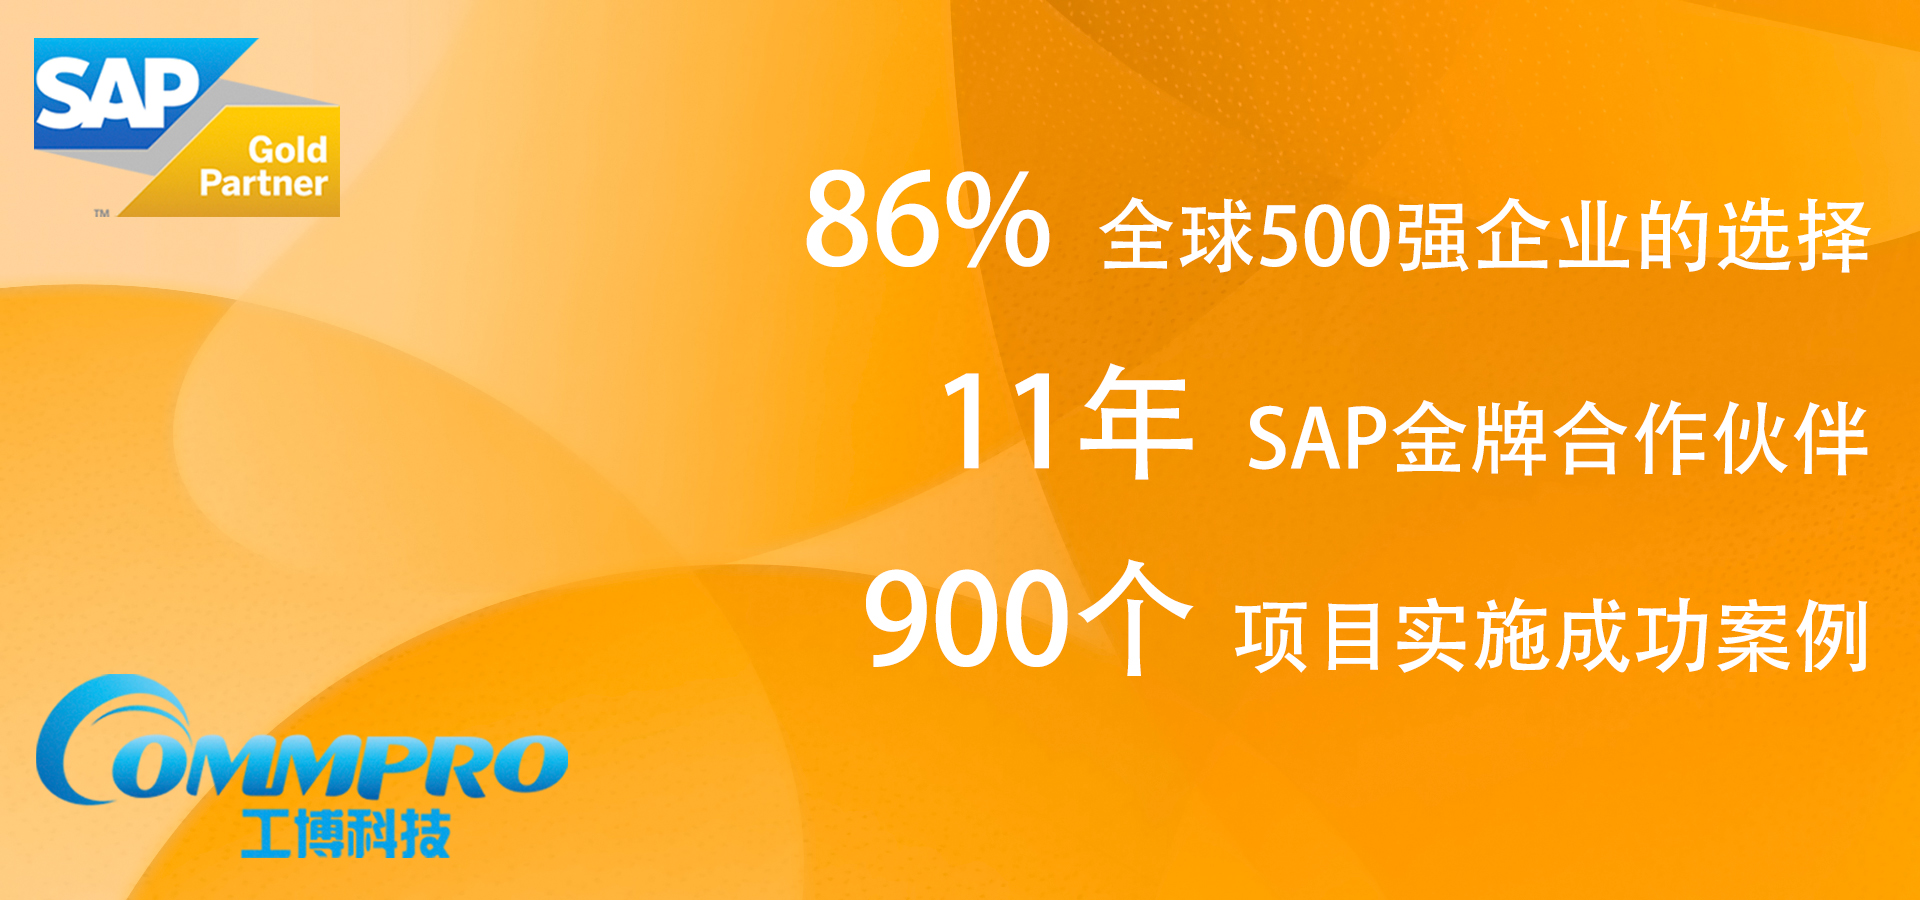 SAP Business One是什么,SAP Business One功能,SAP Business One有哪些好处